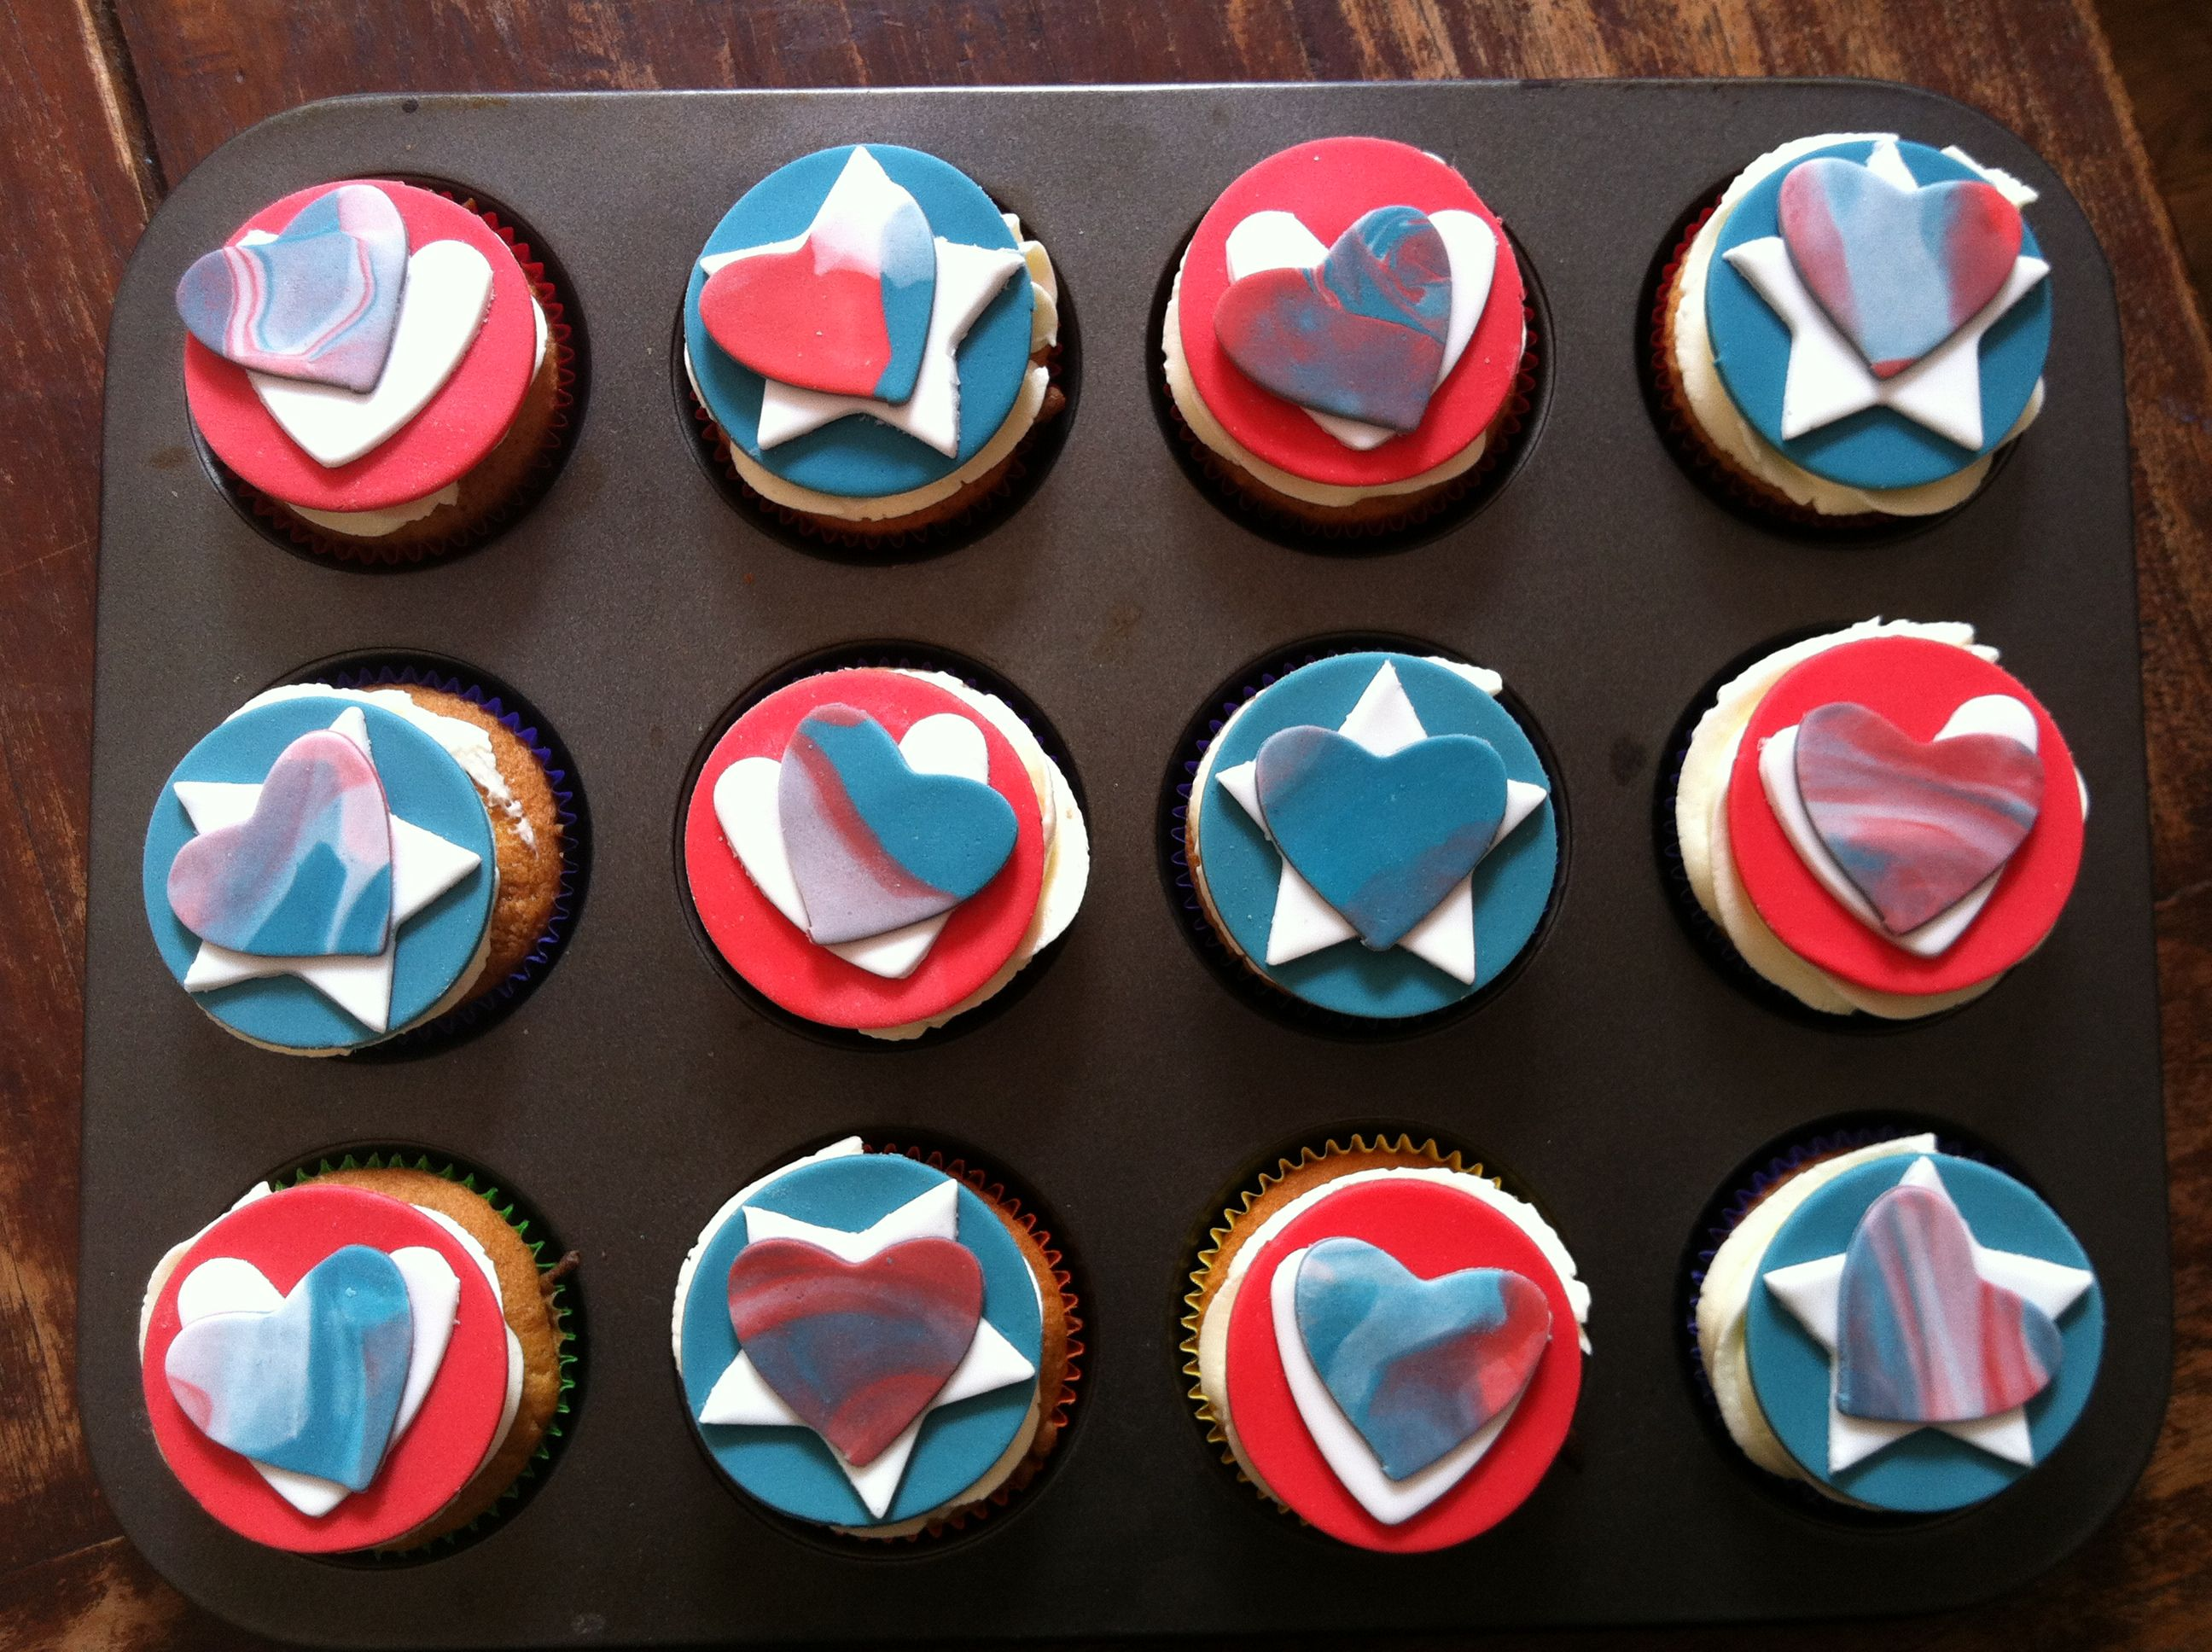 Cupcakes with buttercreme frosting and fondant discs